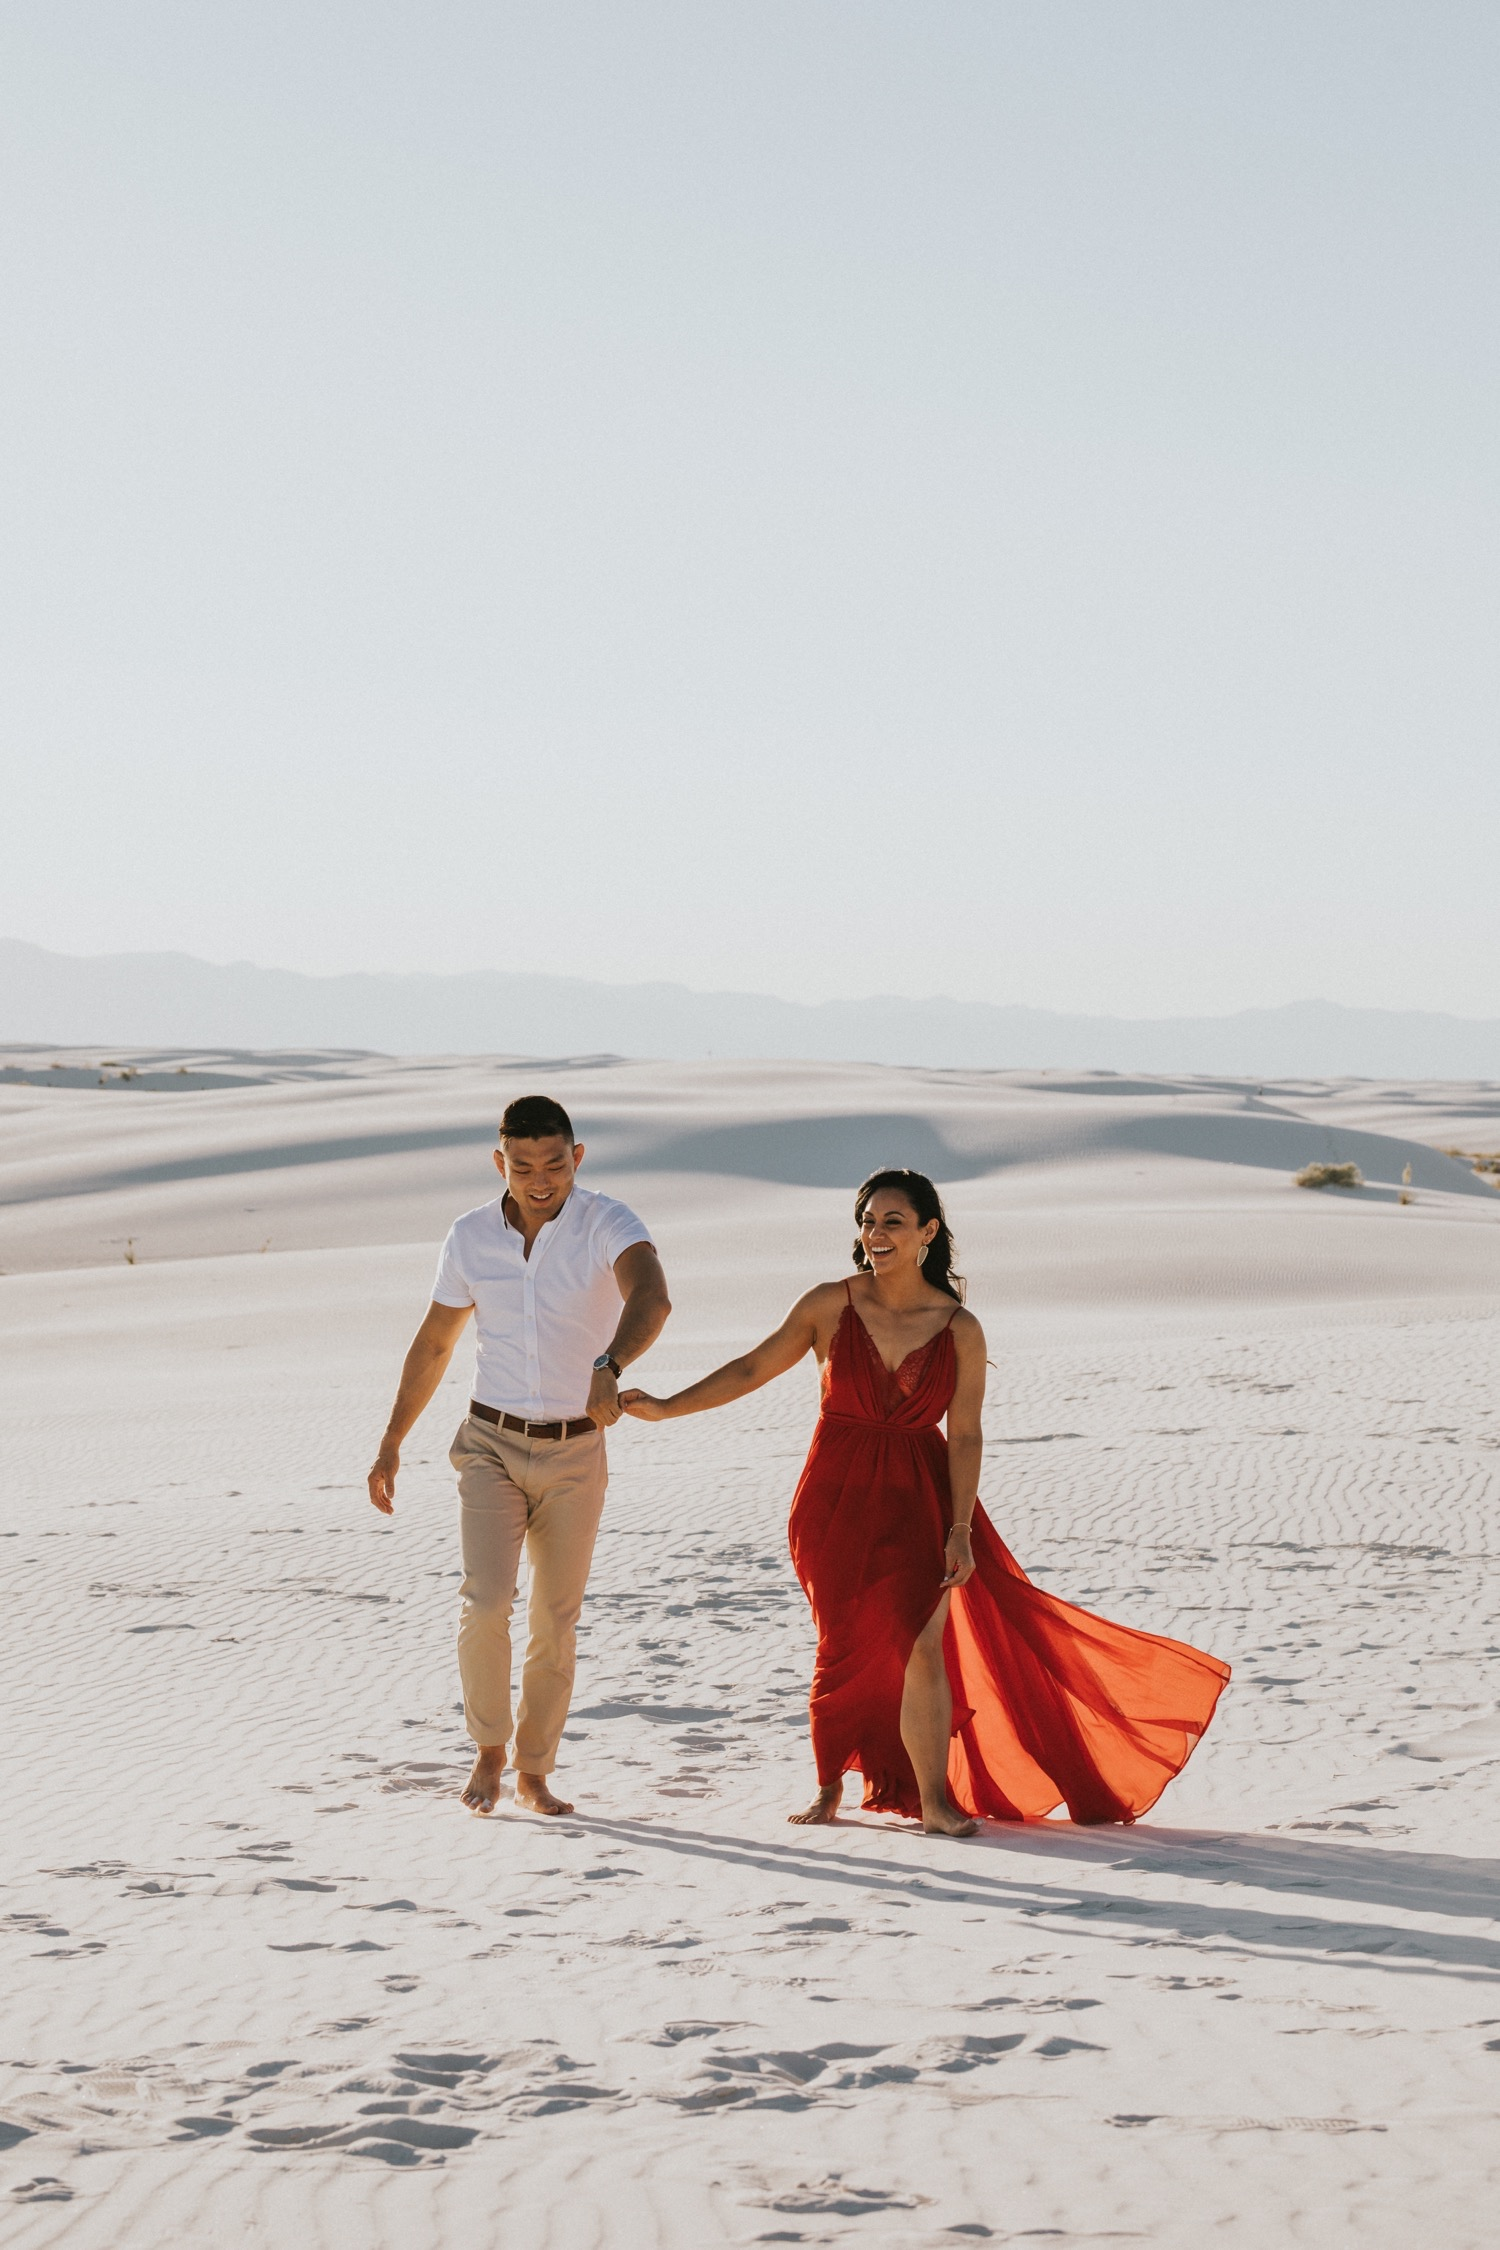 New Mexico Wedding Photographer, Las Cruces Wedding Photographer, White Sands National Monument, White Sands Elopement, White Sands Wedding Photographer, Hudson Valley Wedding Photographer